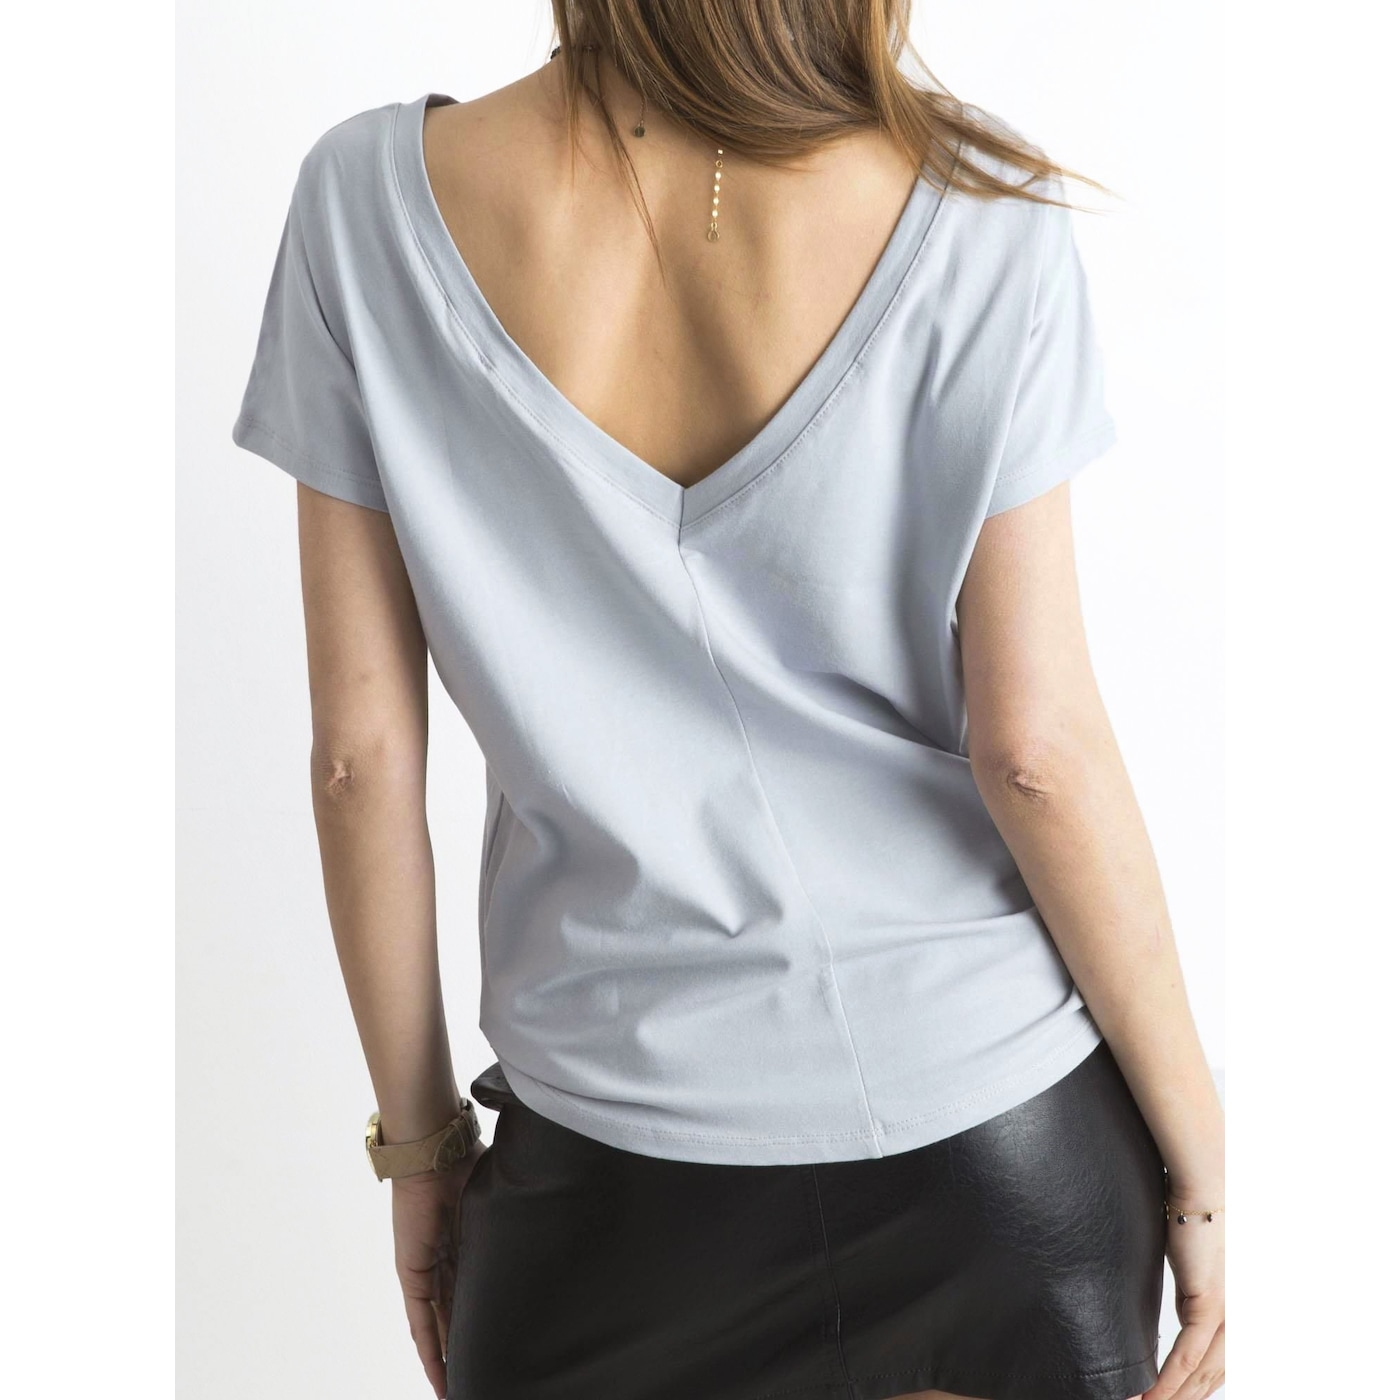 T-shirt with a neckline on the back in light gray